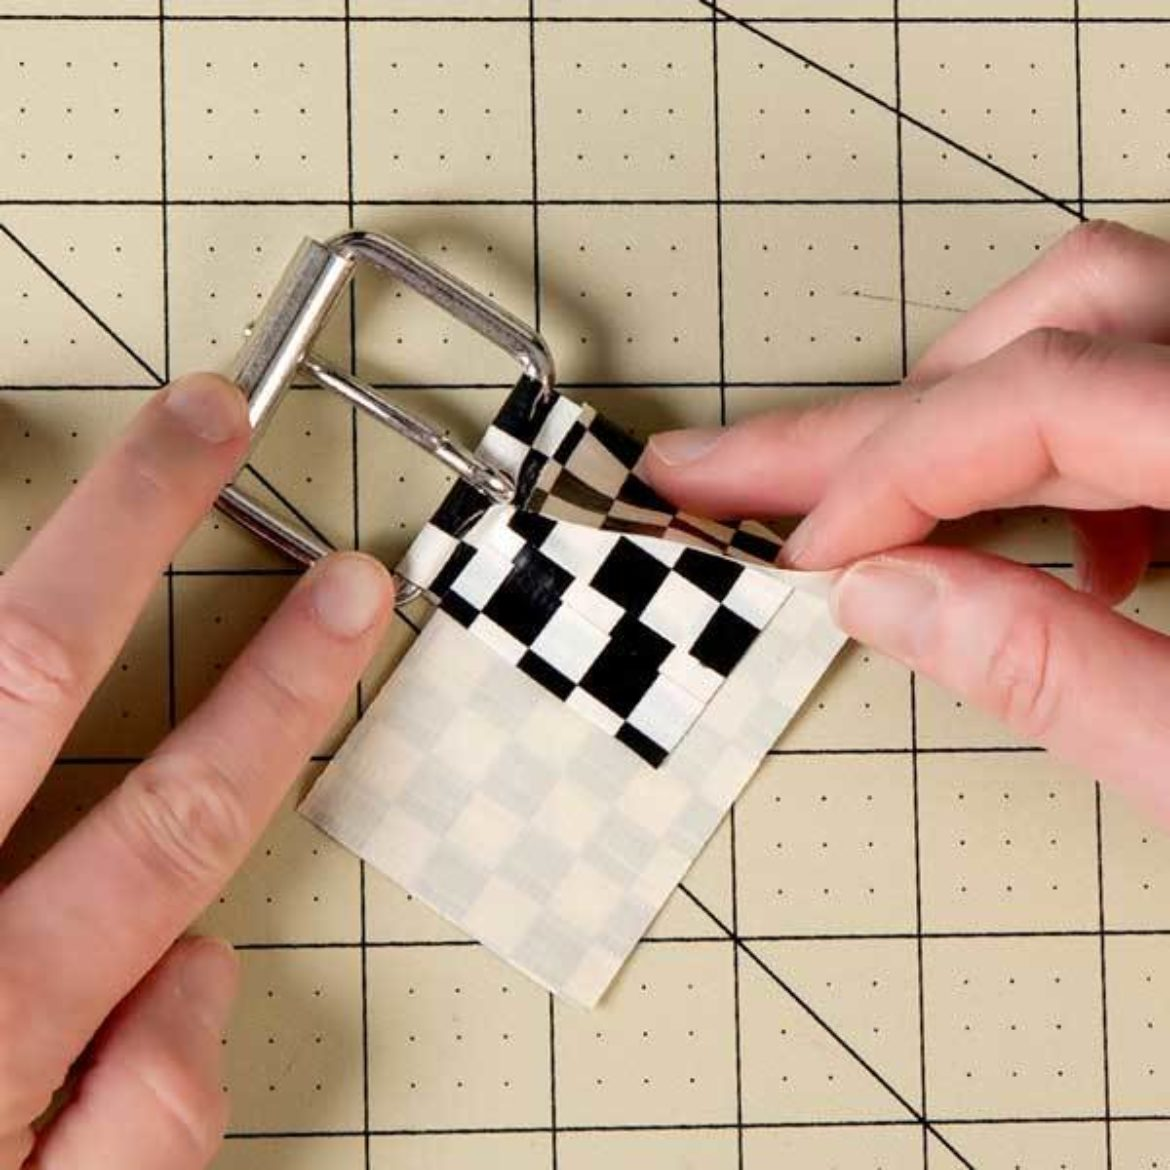 after folding the piece of tape with the slit over itself with the buckle in the middle, secure with a strip of tape